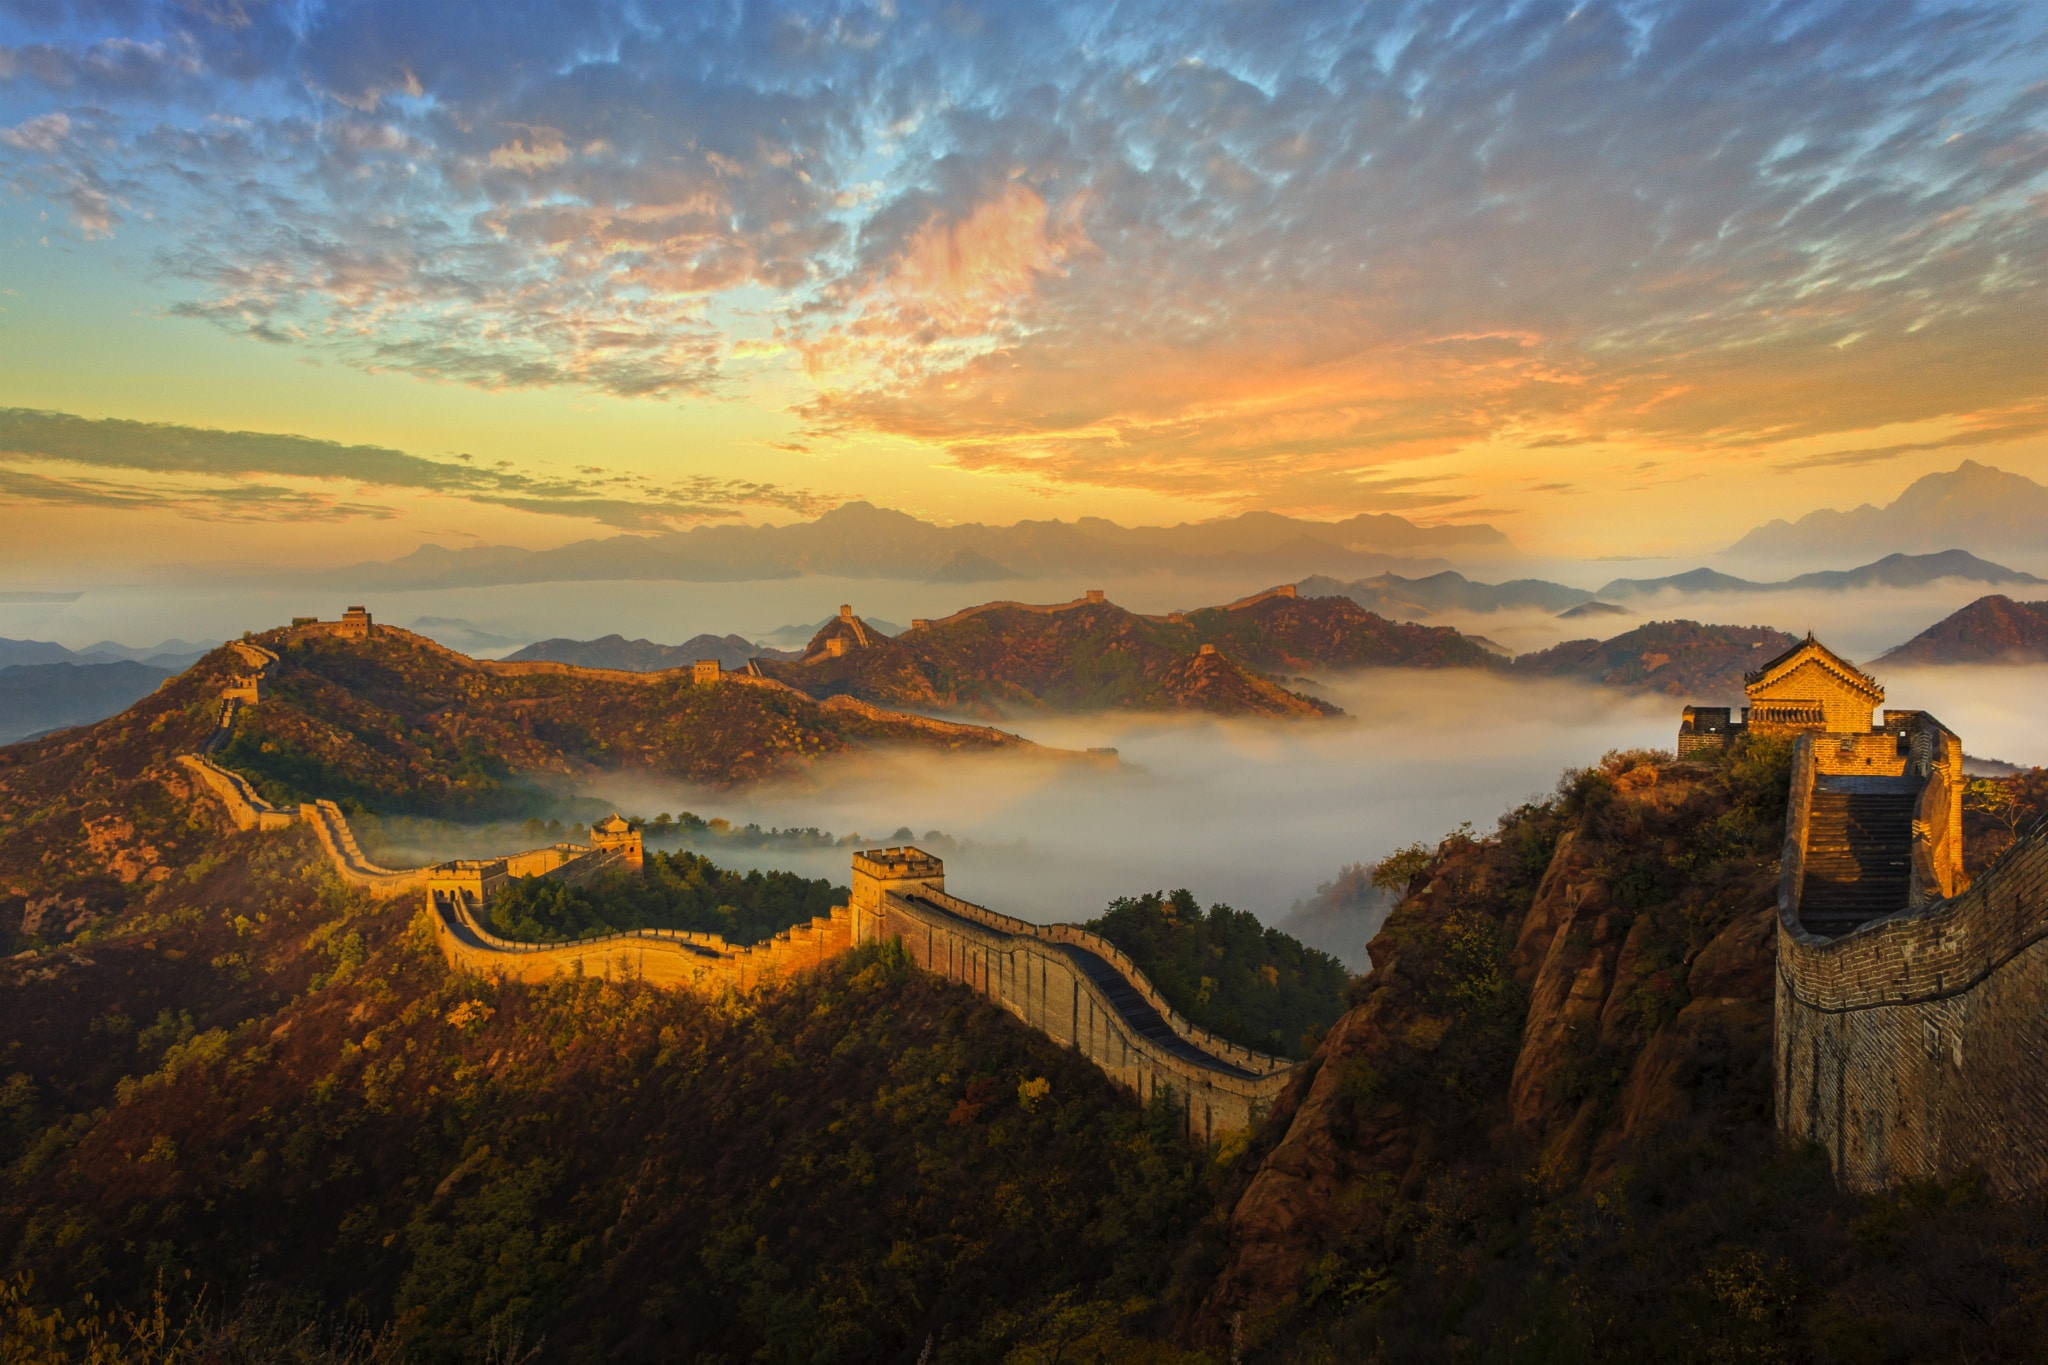 images of the great wall of china